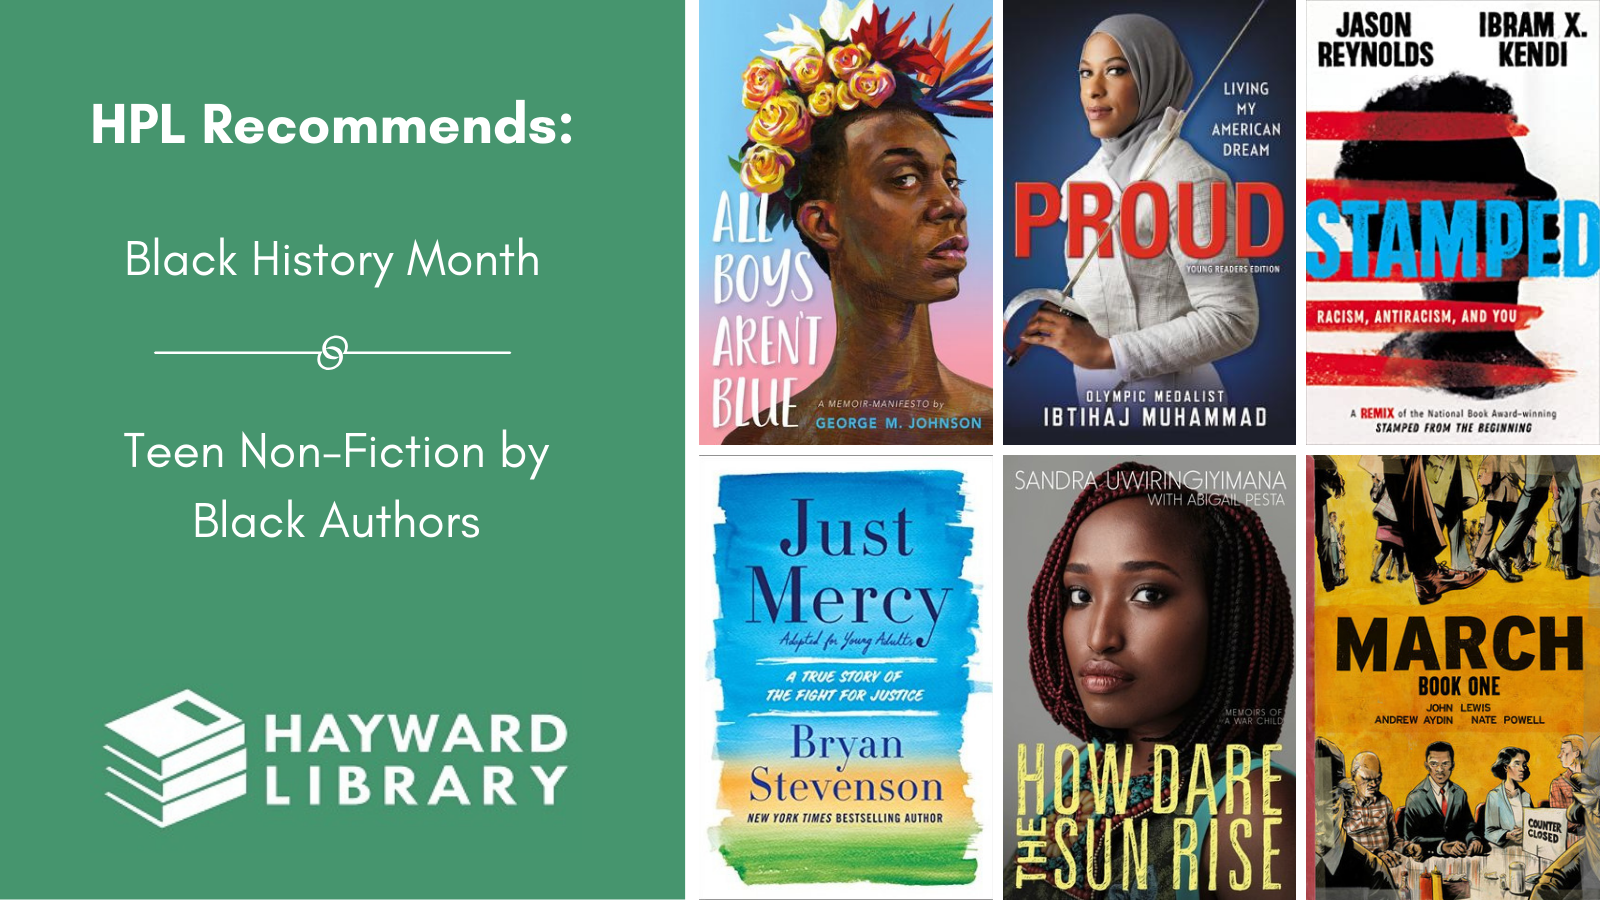 Collage of book covers with a green block on left side that says HPL Recommends, Black History Month, Teen-Fiction by Black Authors in white text, with Hayward Library logo below it.